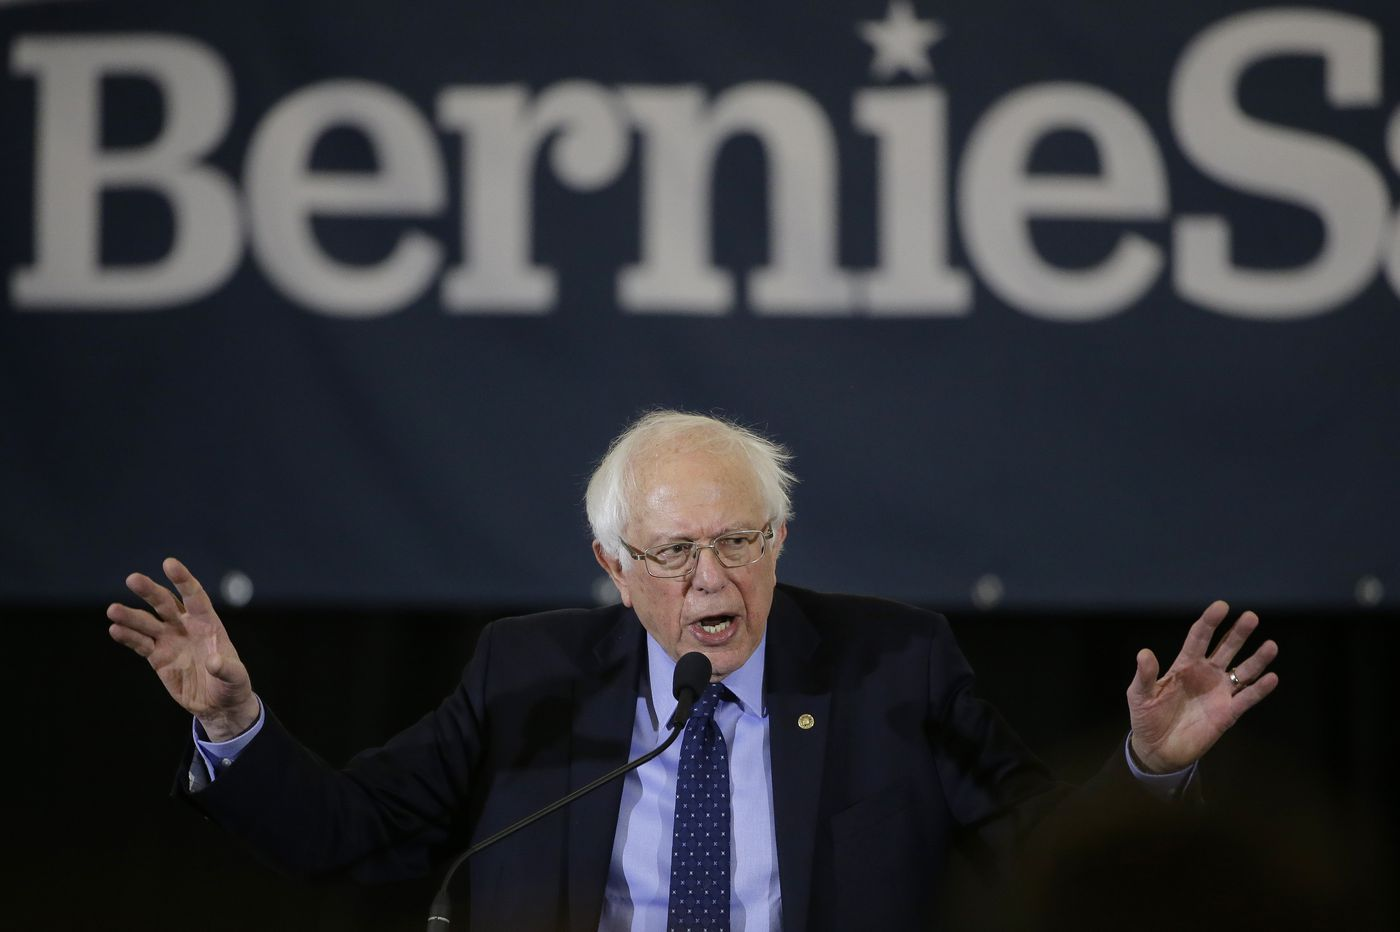 Bernie Sanders releases 10 years of tax returns, details millionaire status